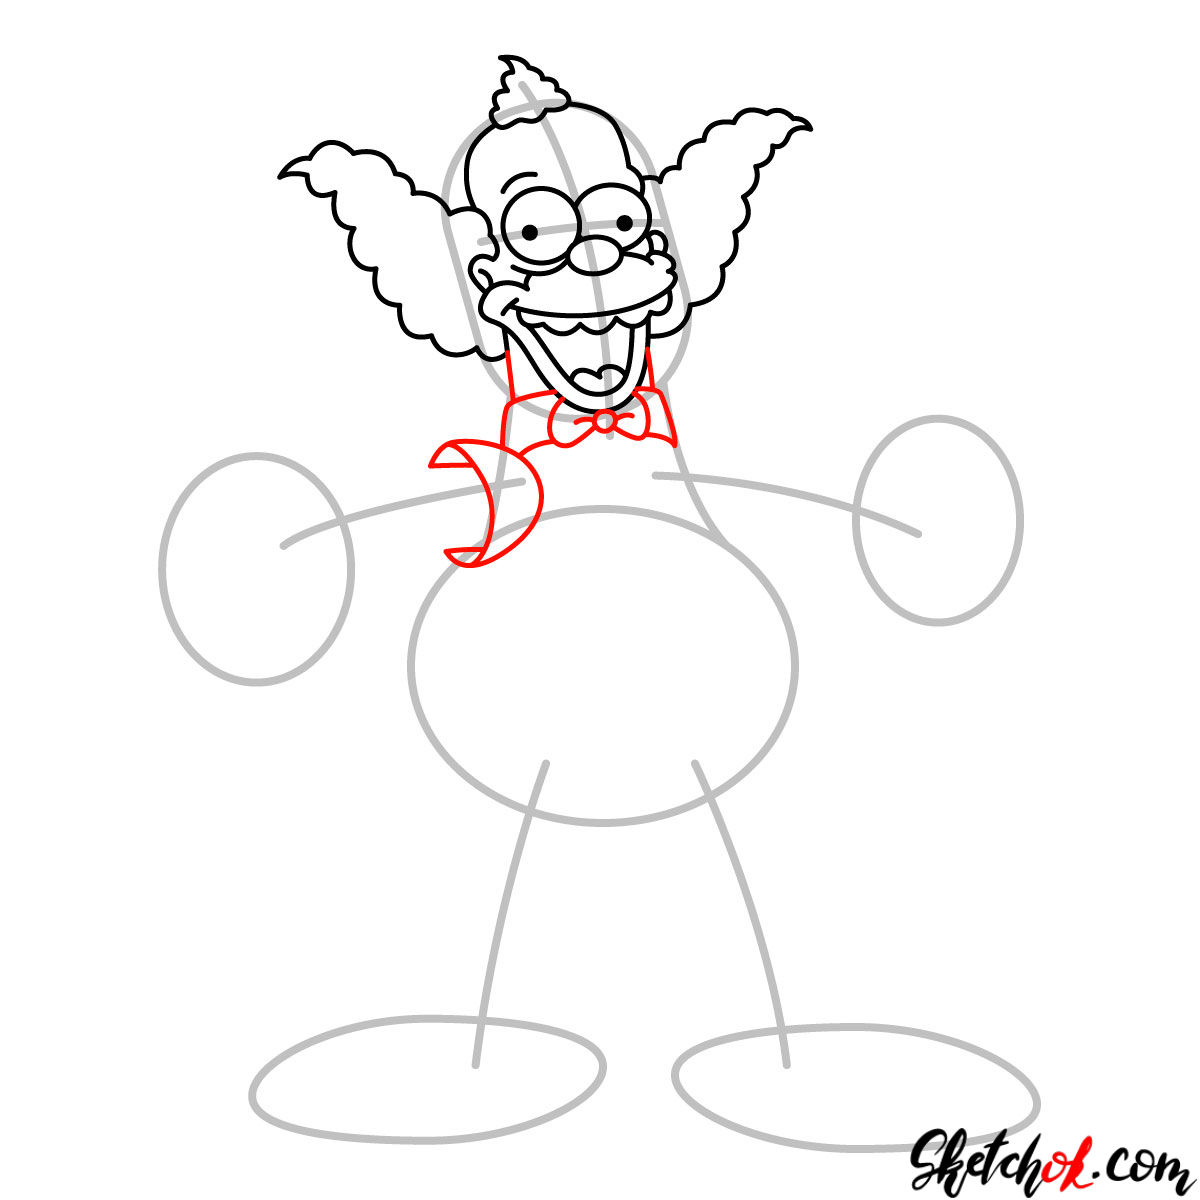 How to draw Krusty the Clown - step 06